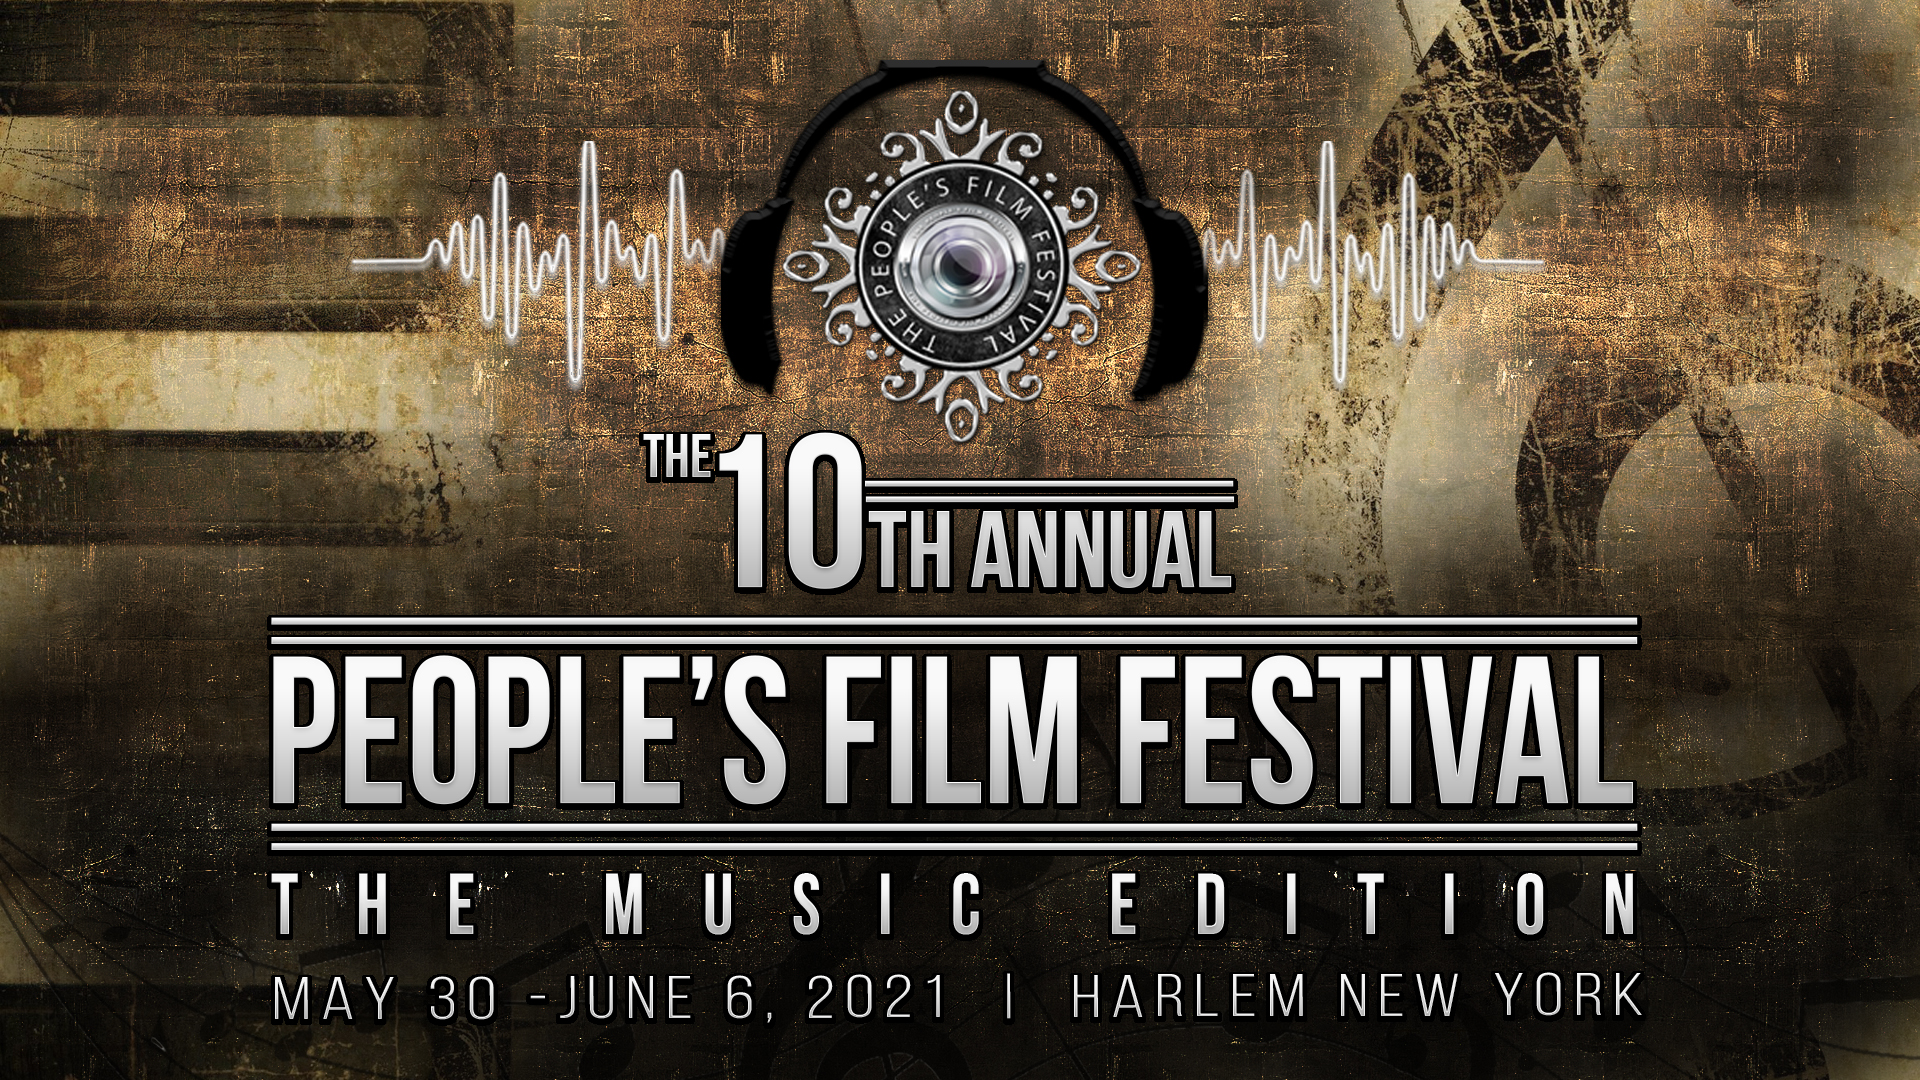 THE PEOPLE'S FILM FESTIVAL 2021